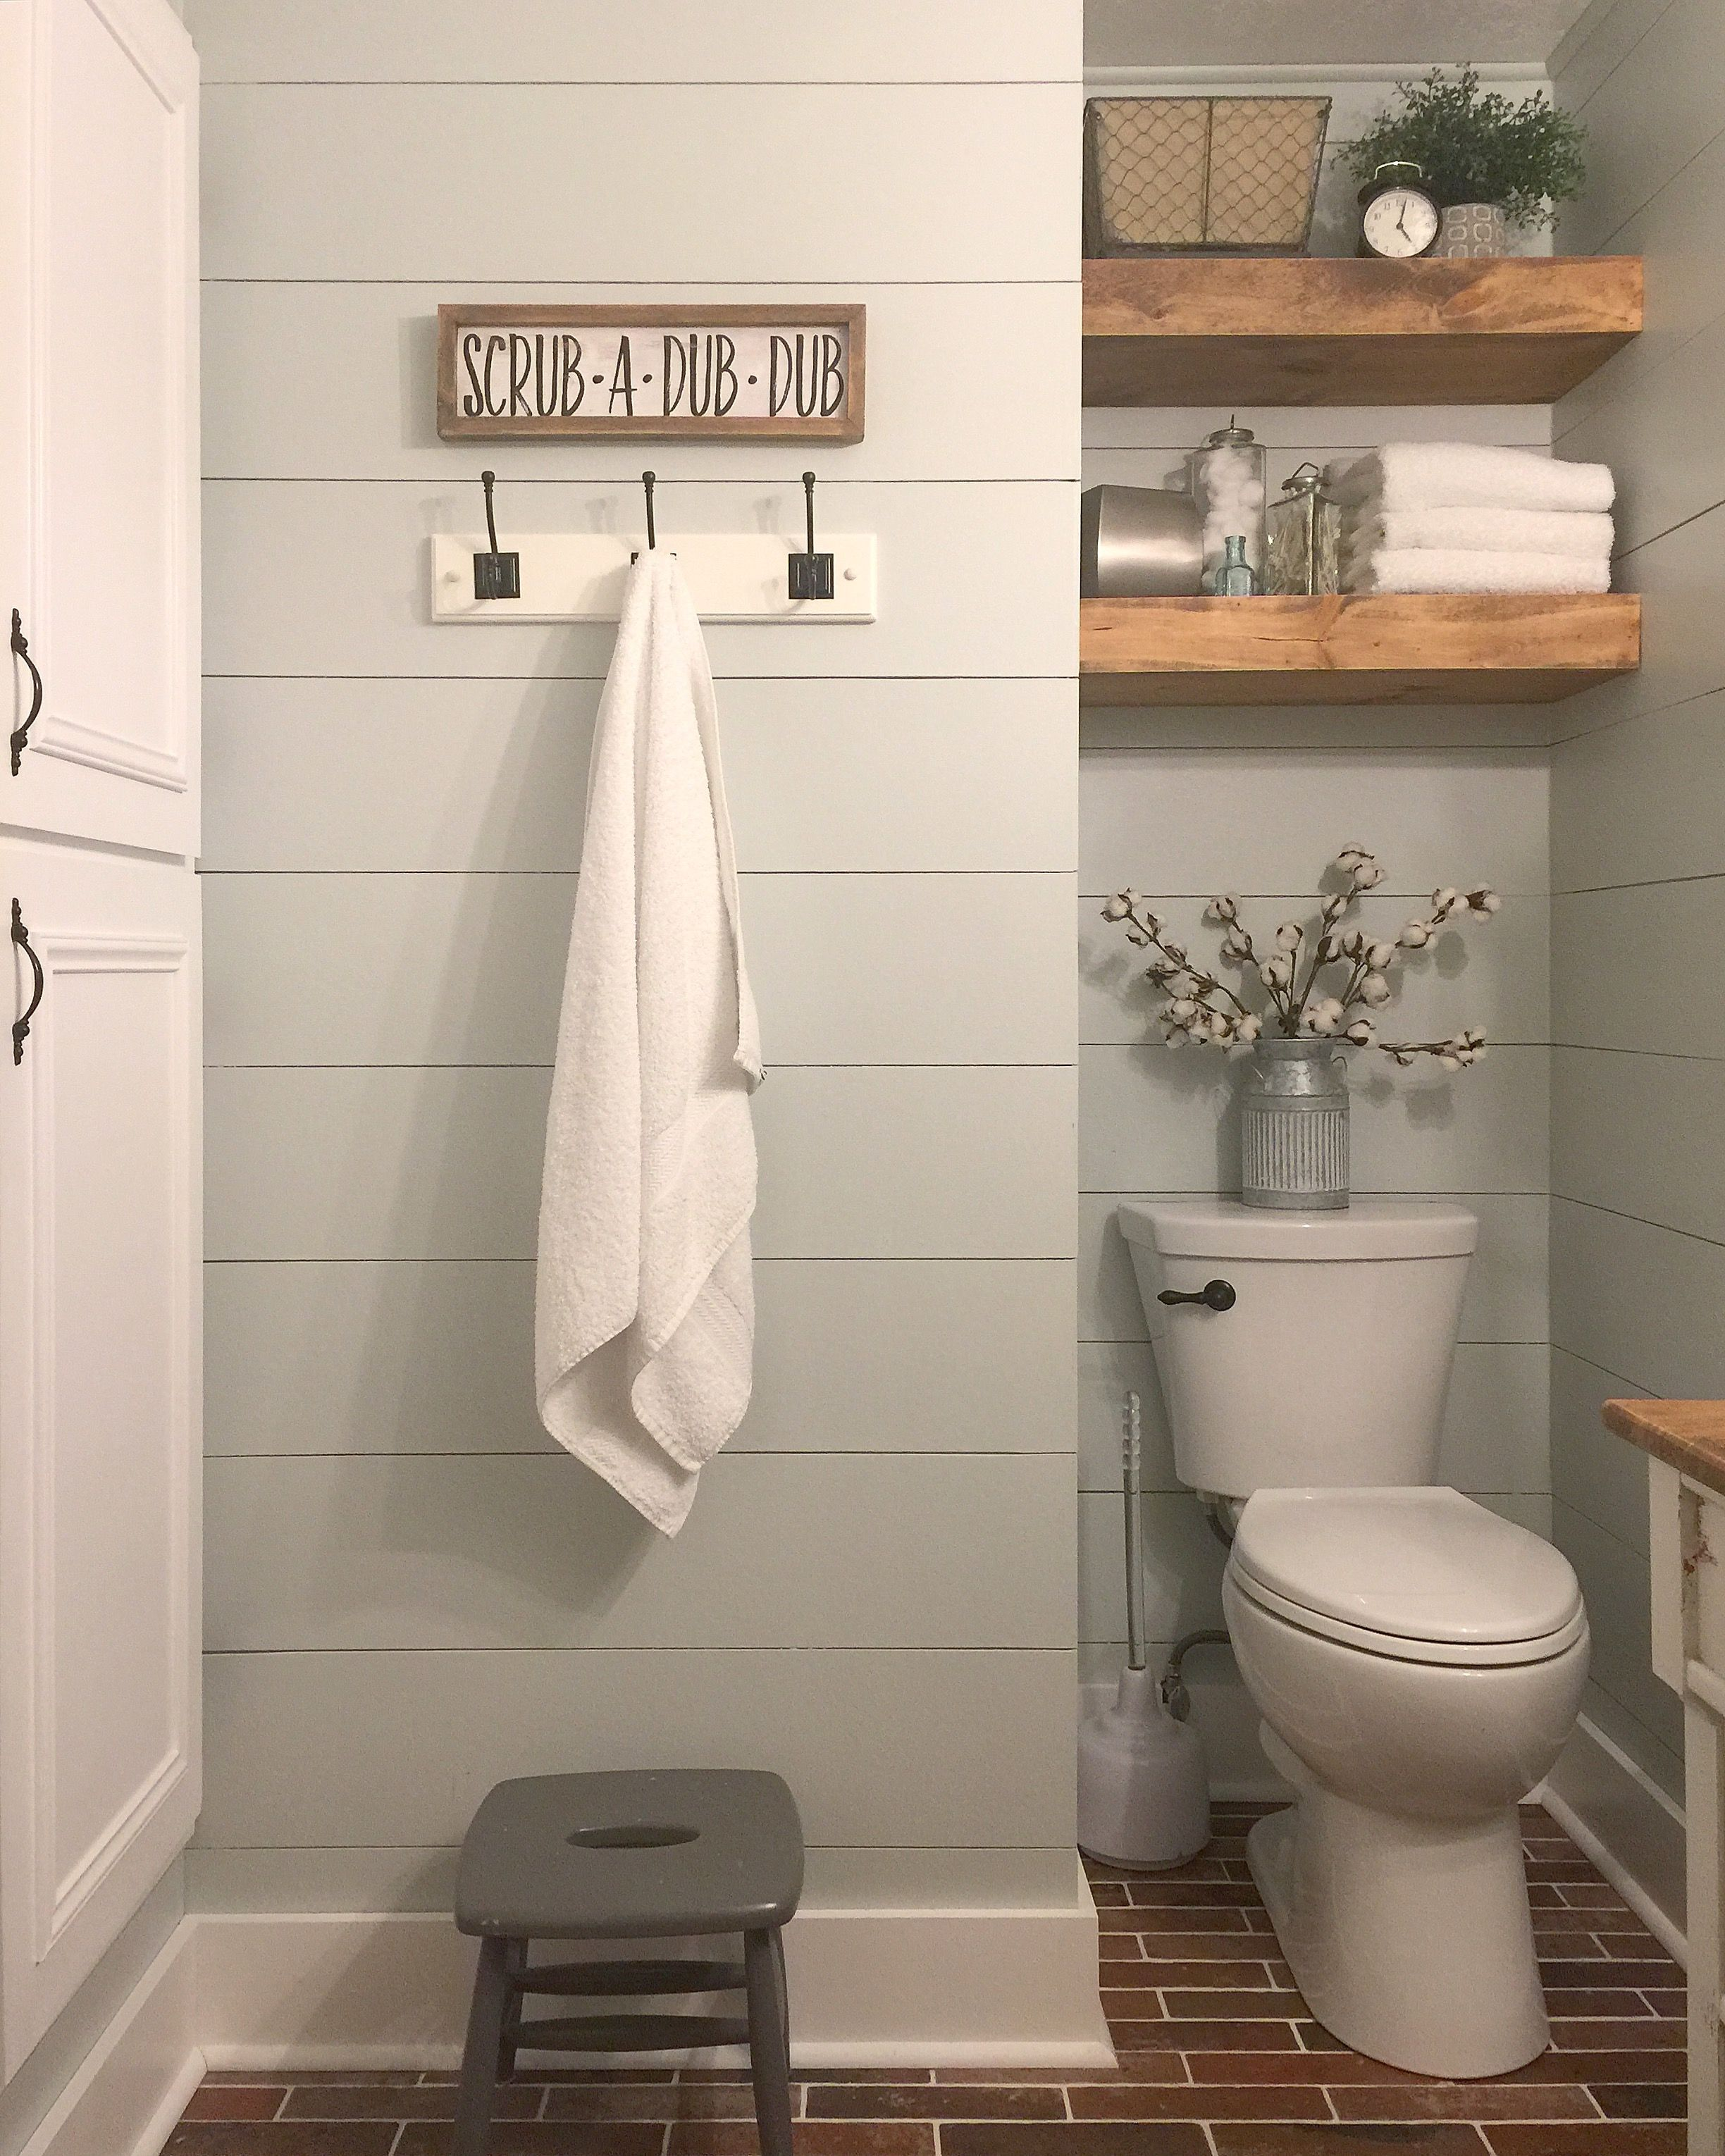 Farmhouse Bathroom Small Ideas Decor Tub Tile